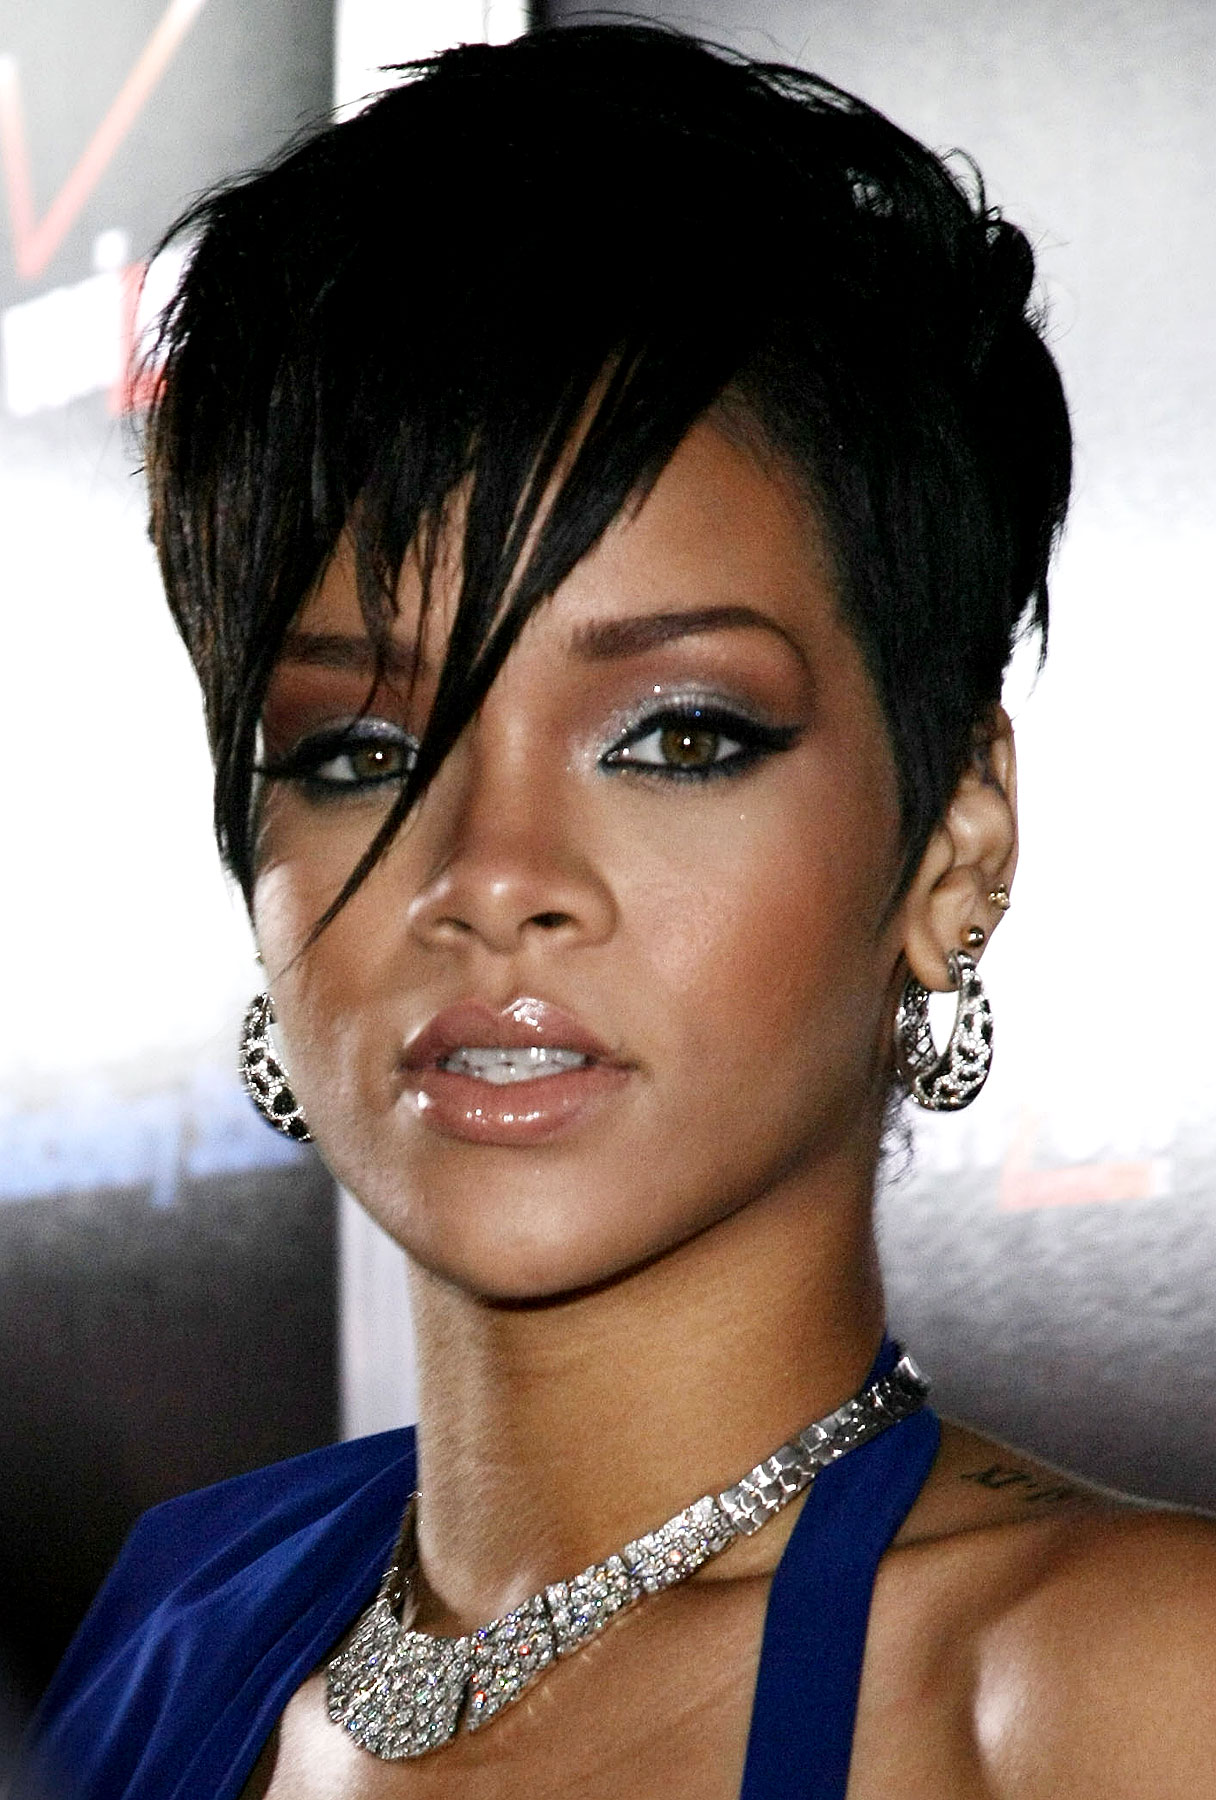 Update: Rihanna Reportedly Tells Cops That Brown Choked, Threatened to Kill Her